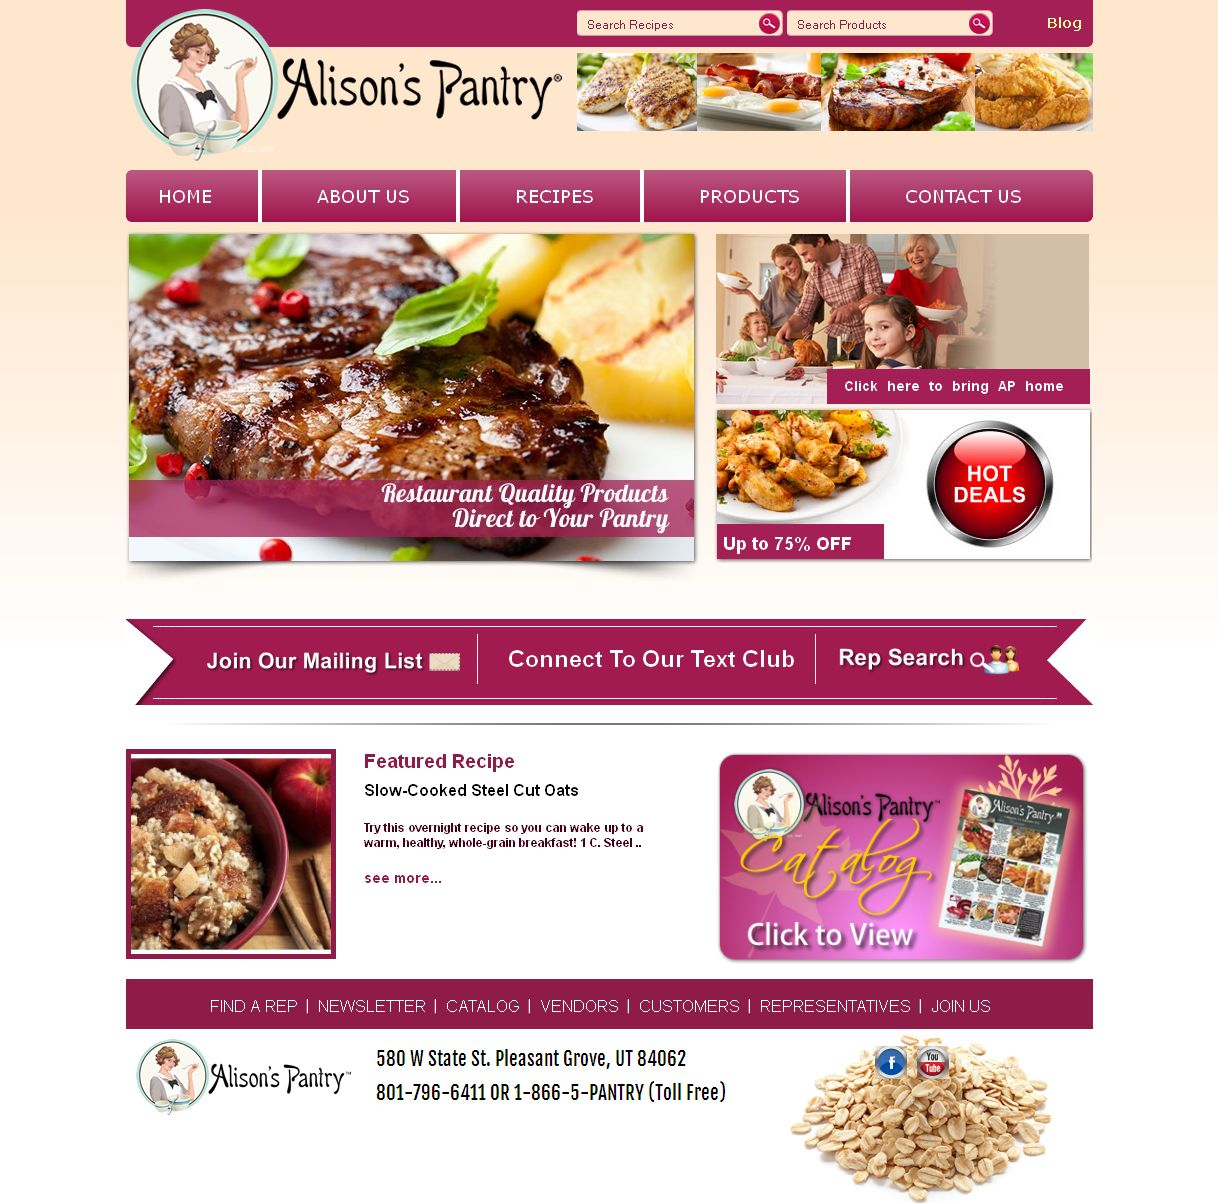 A Magento Based eCommerce Website for Food Products